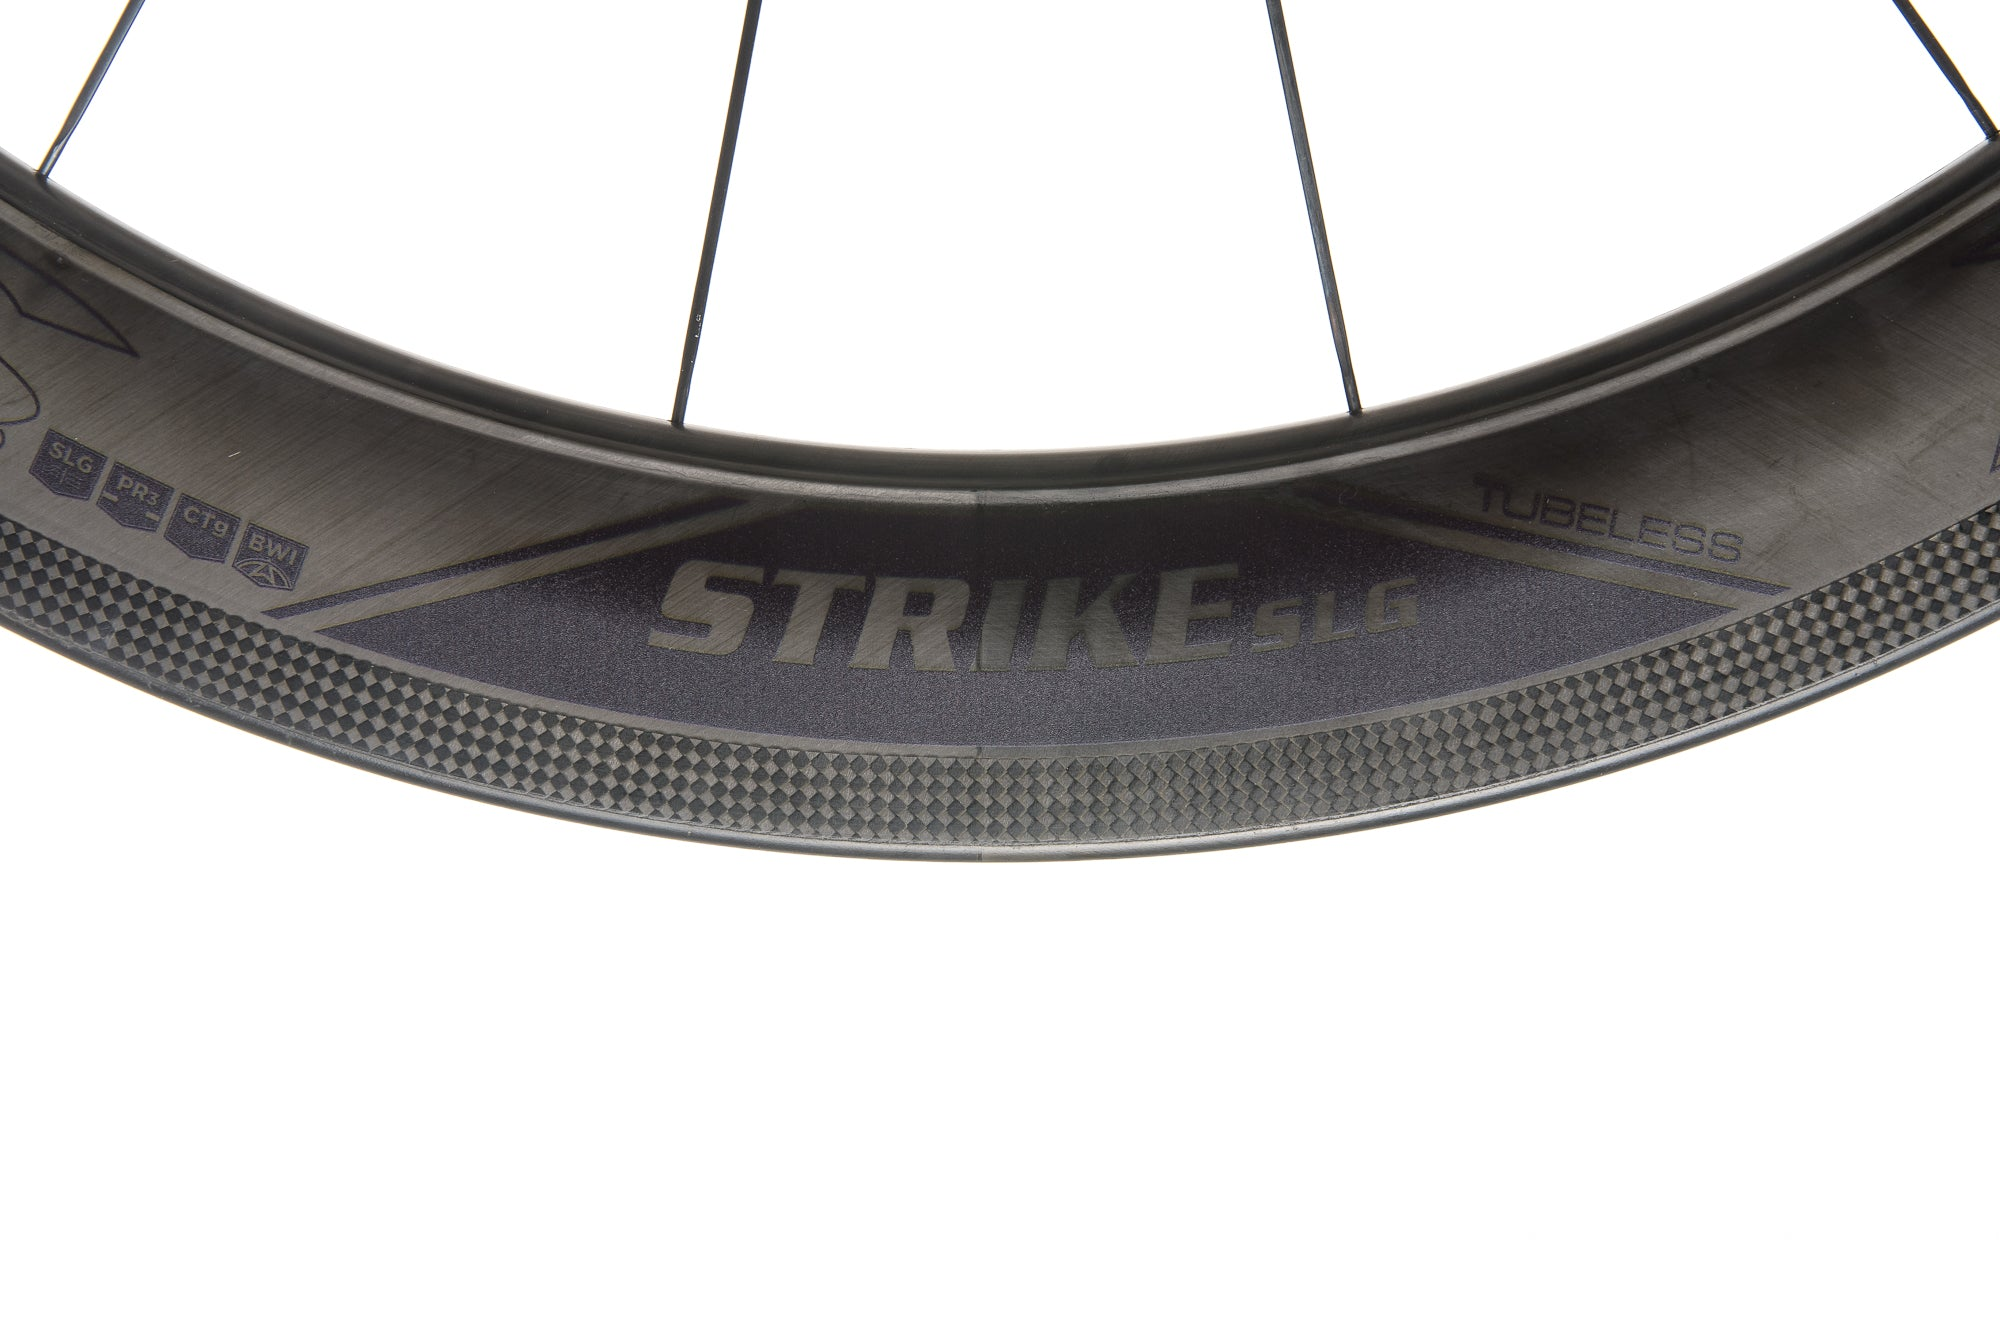 Reynolds Strike SLG Carbon Clincher 700c Wheelset